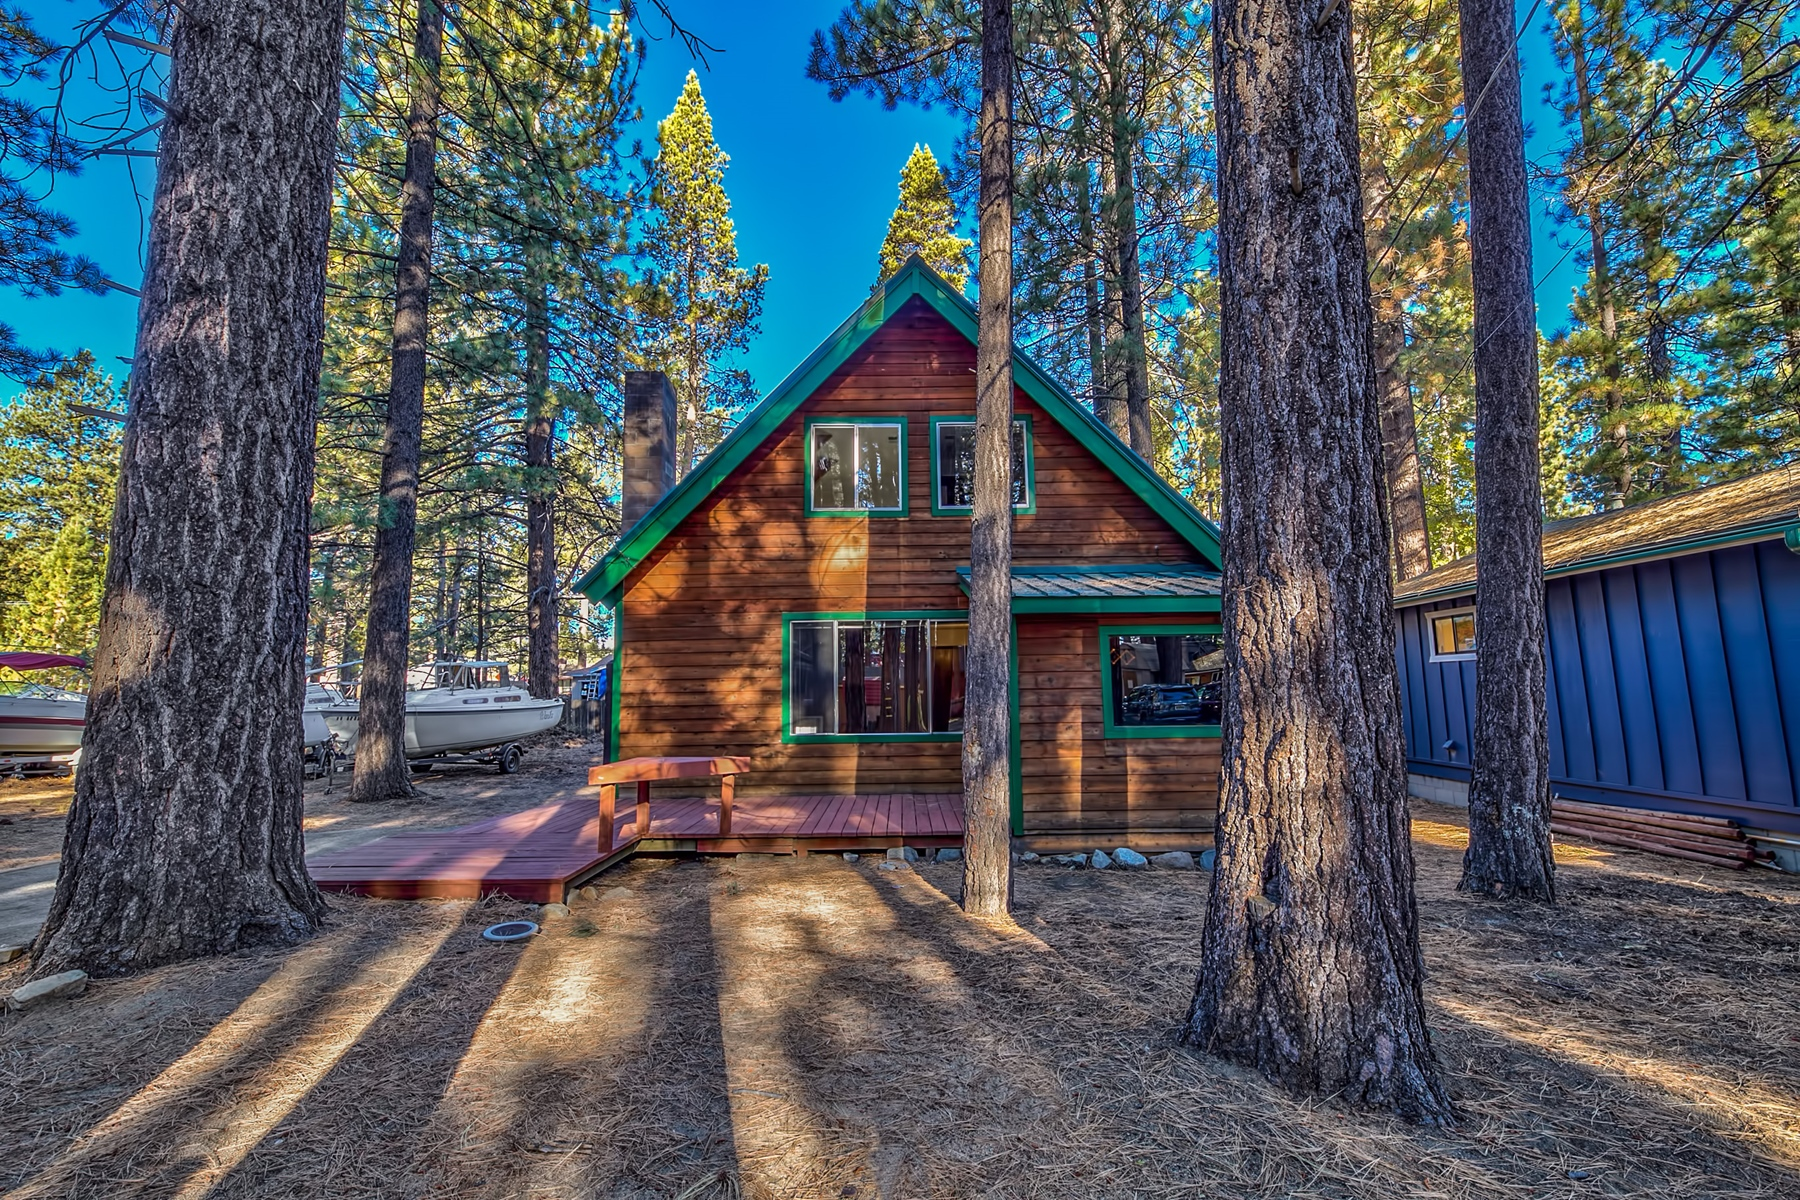 Single Family Home for Active at 2241 Helen Ave 2241 Helen Ave. South Lake Tahoe, California 96150 United States